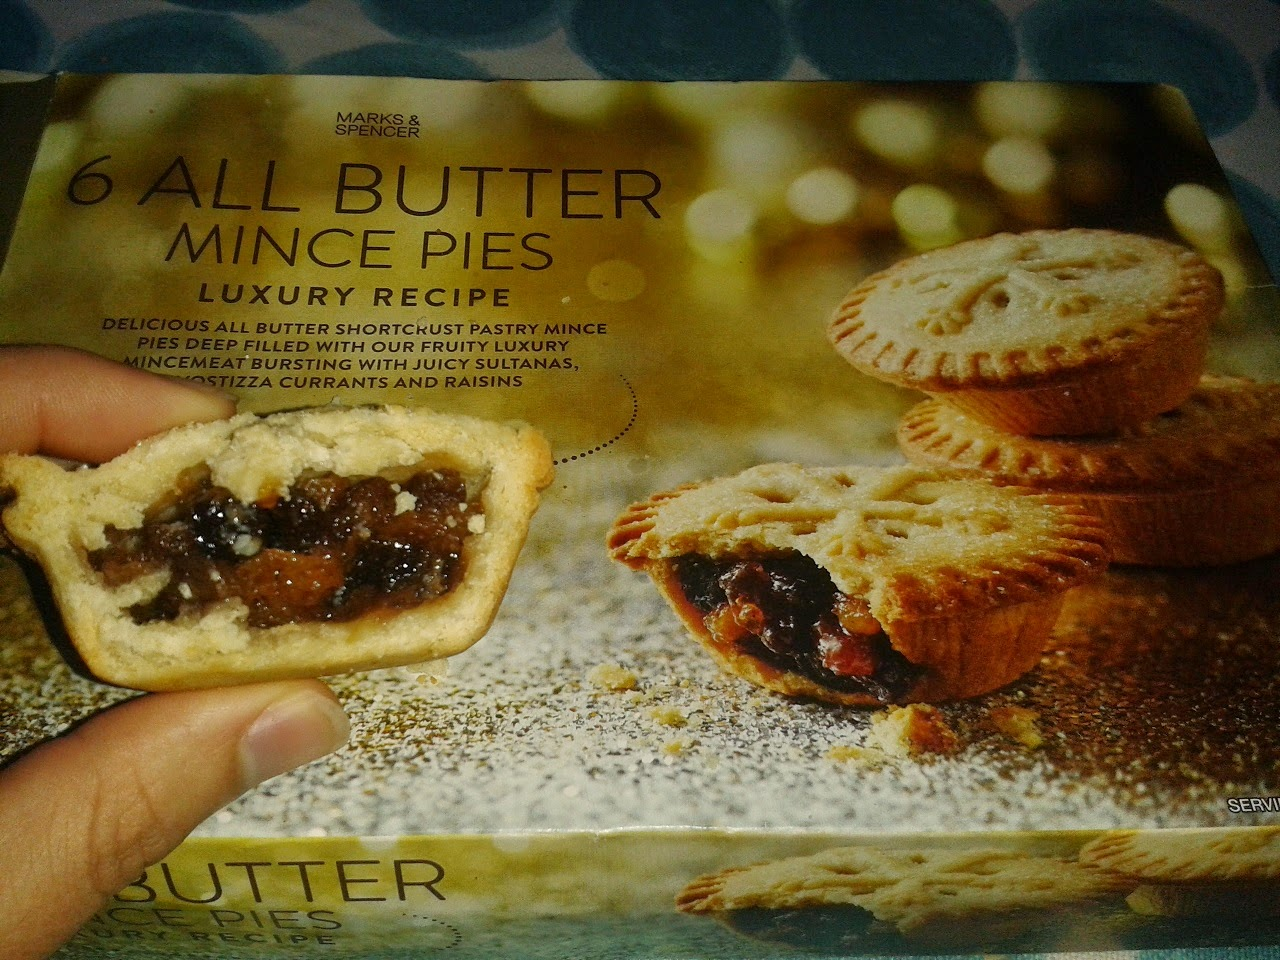 Marks and Spencer All Butter Luxury Mince Pies Review